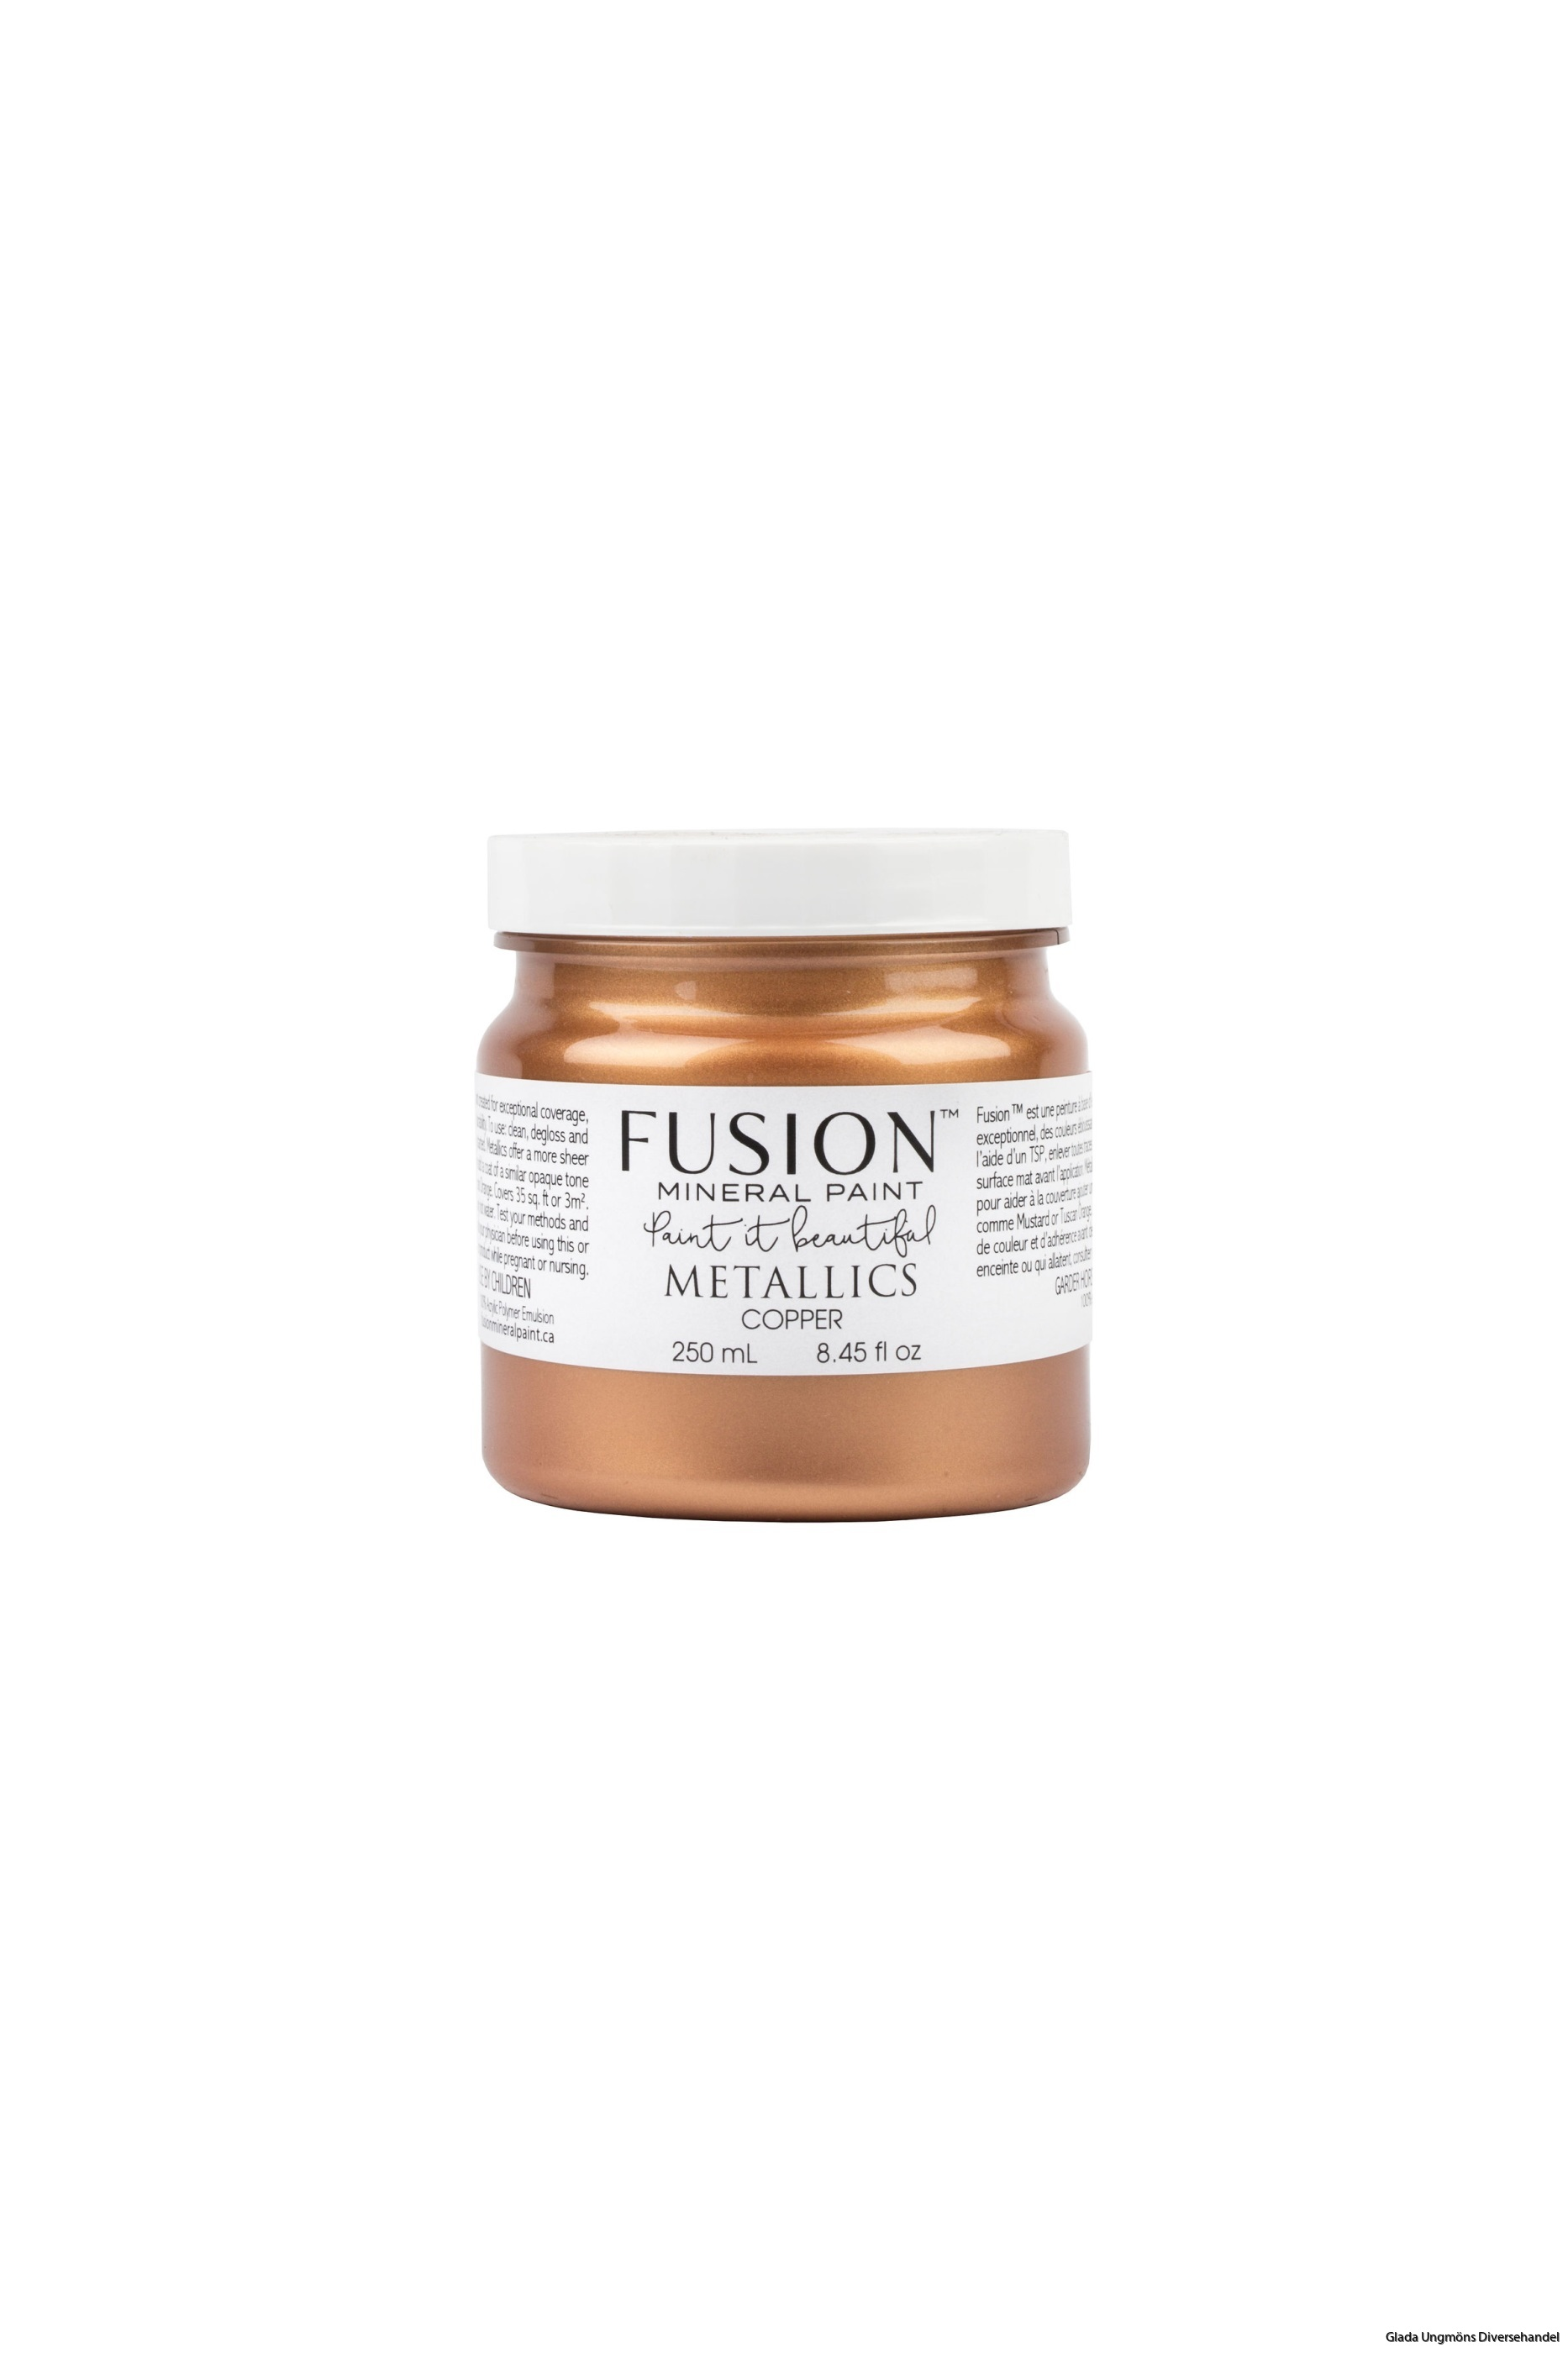 fusion_mineral_paint-metallic-copper-250ml